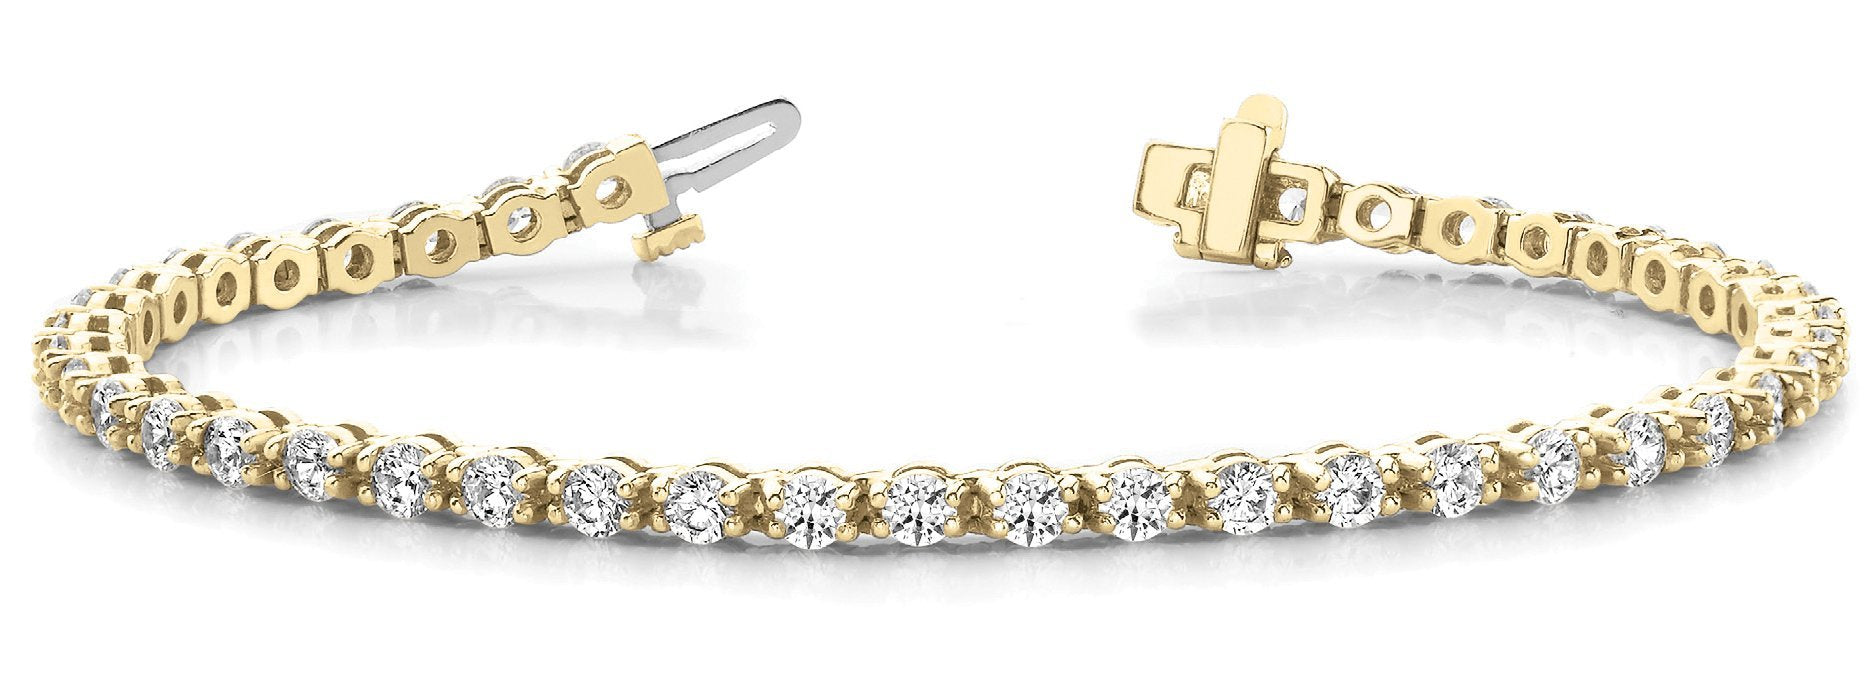 Line Diamond Bracelet 5.13ct tw Ladies - 14kt Yellow Gold